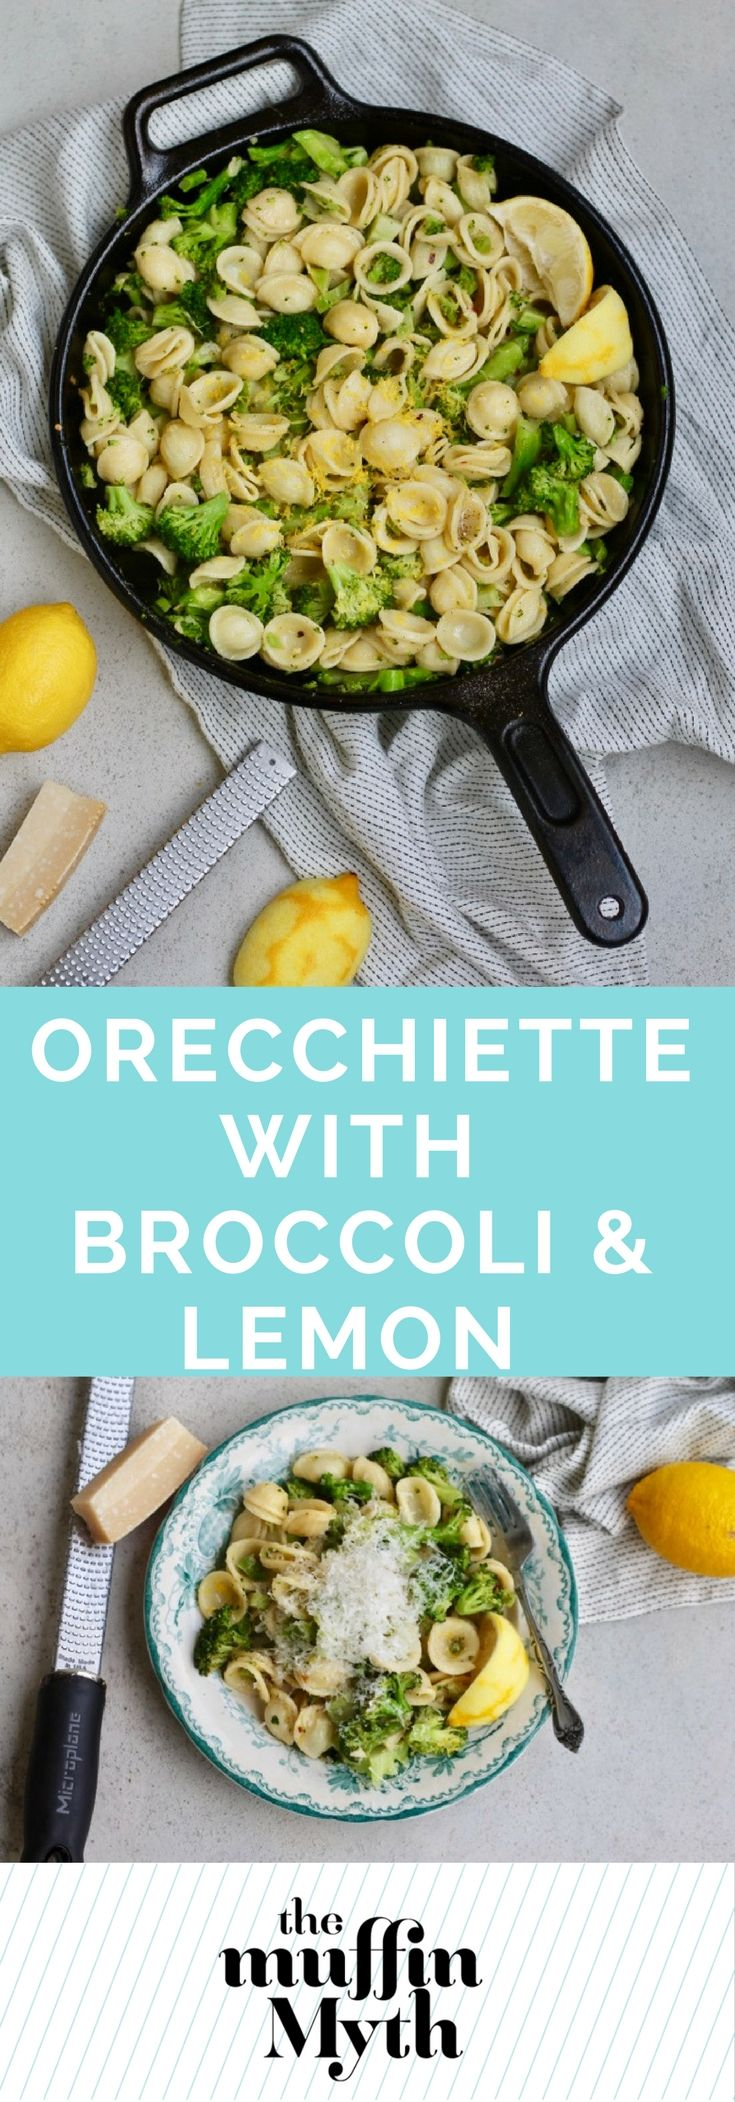 This quick and easy Orecchiette with Broccoli and Lemon is a perfect weeknight dinner. It's loaded with veggies, comes together in a flash, and is simple yet still sophisticated.  via @themuffinmyth